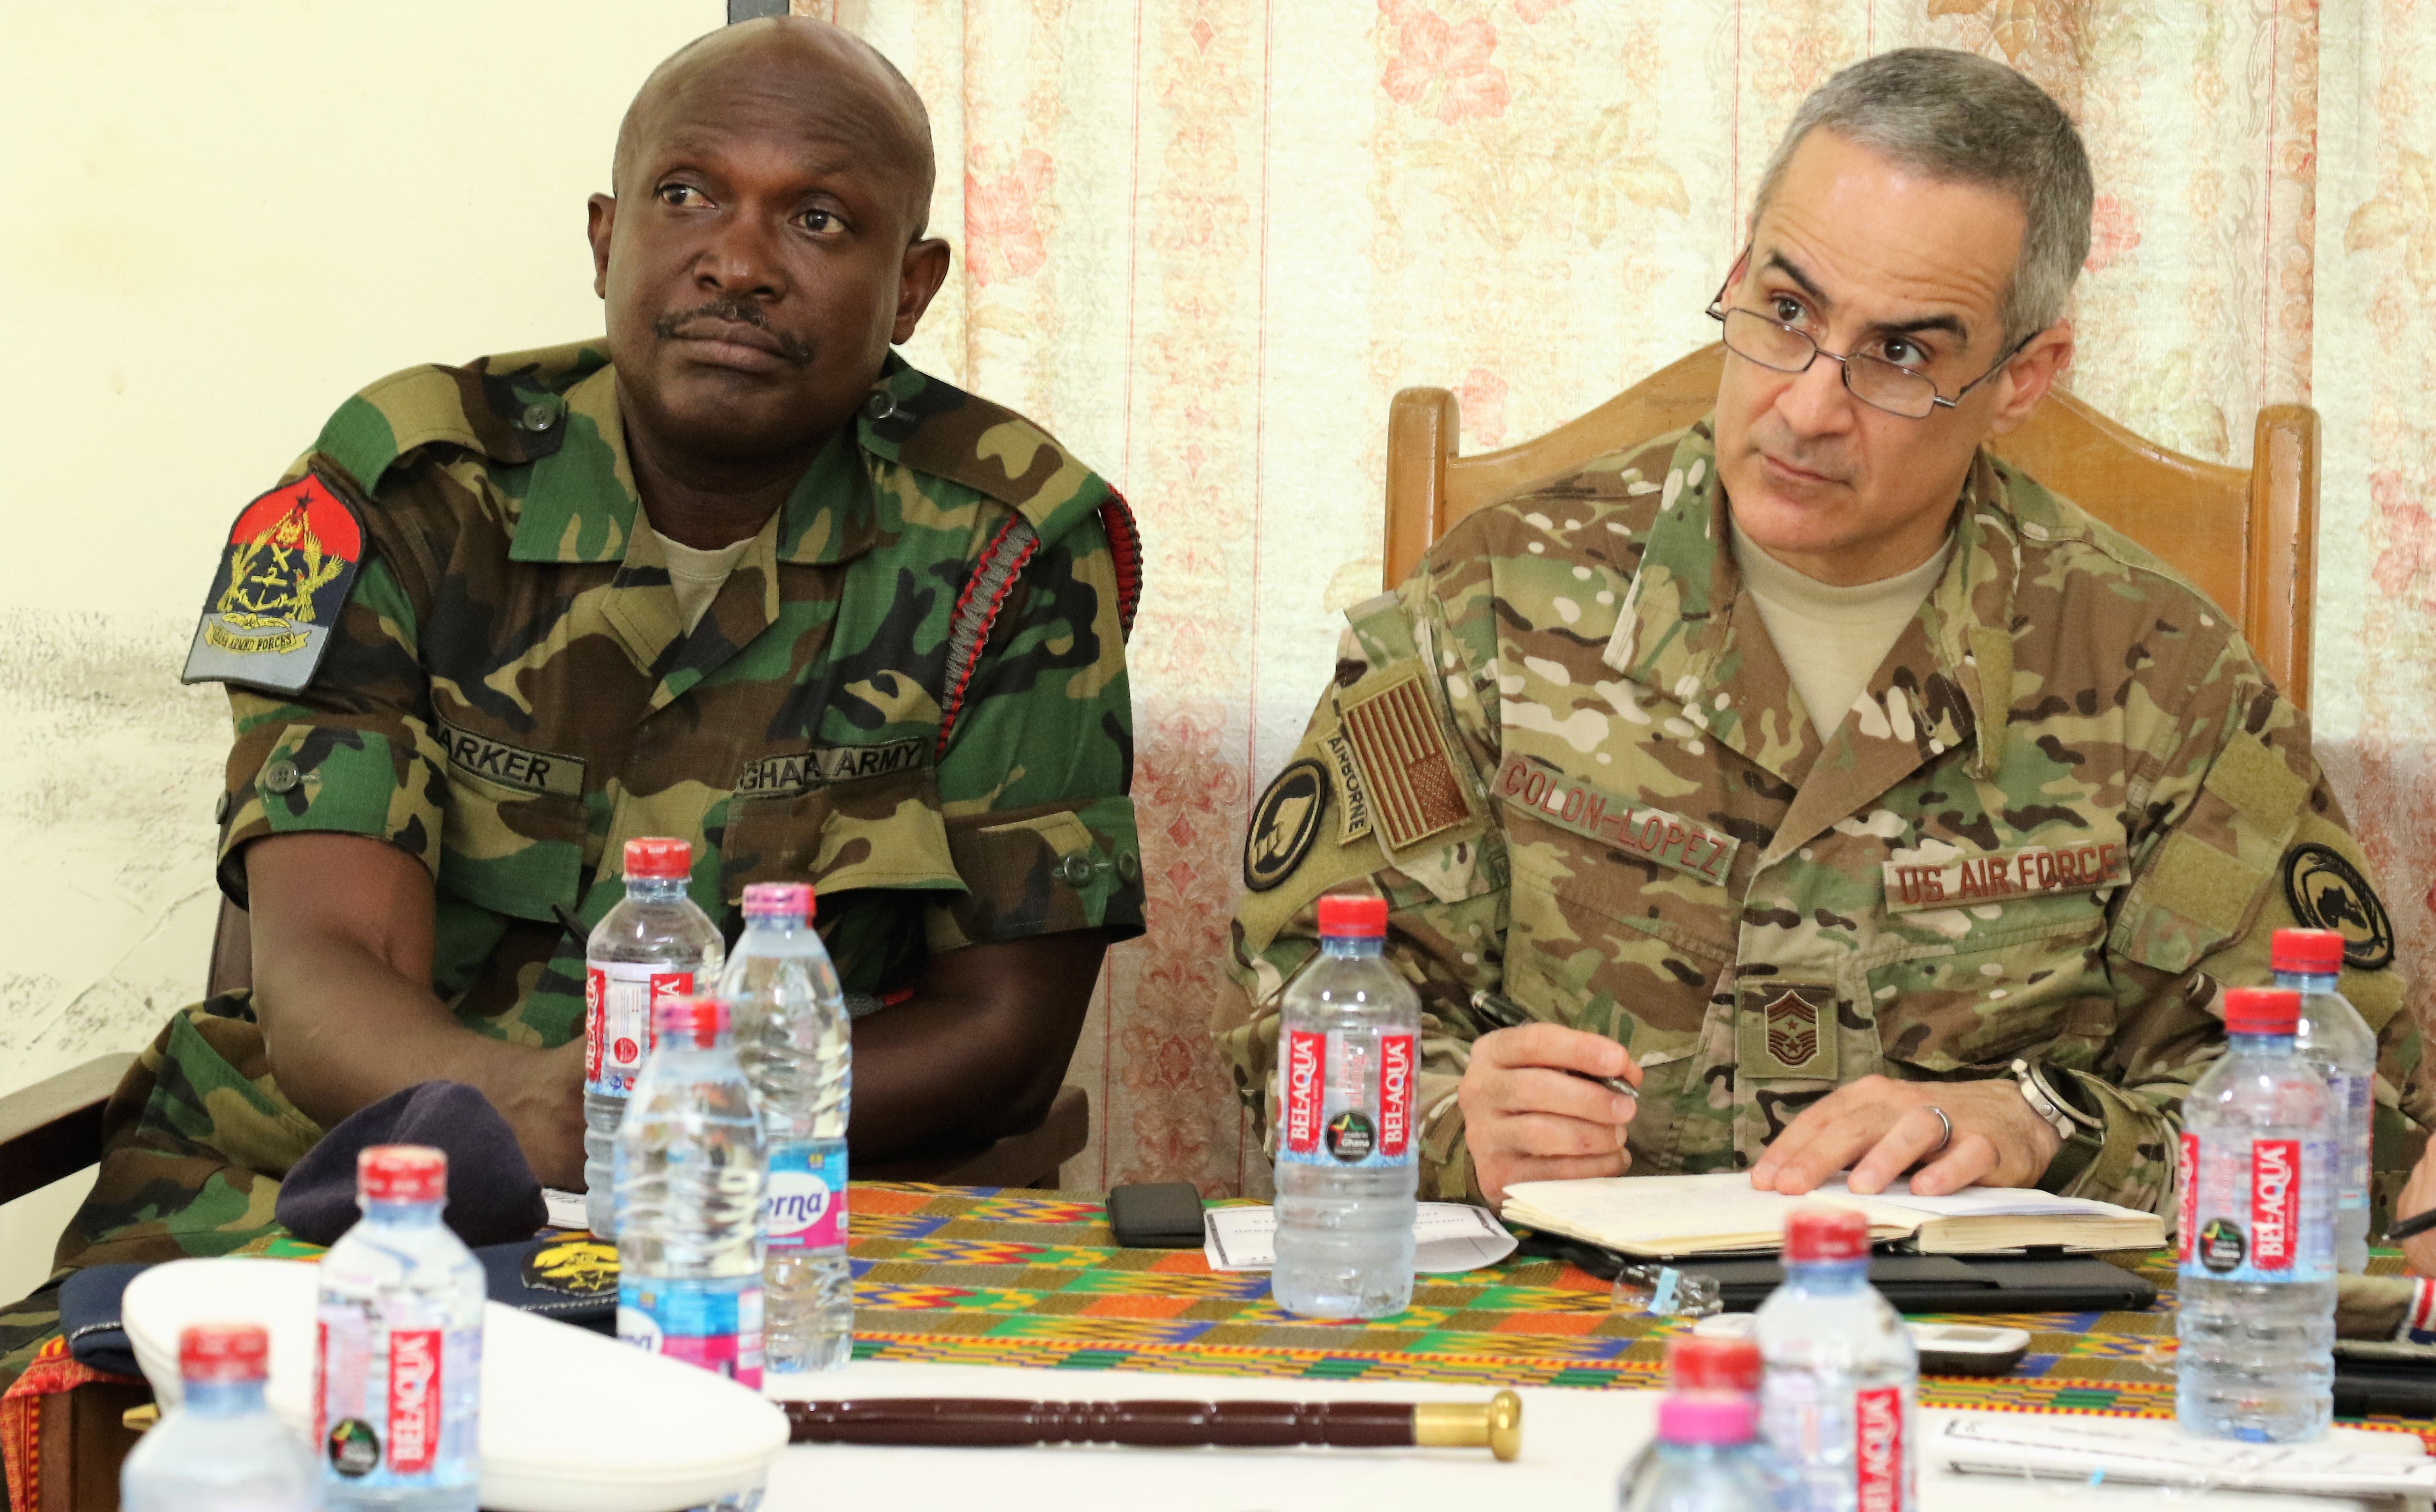 U.S. Air Force Command Chief Master Sgt. Ramon Colon-Lopez, command senior enlisted leader, U.S. Africa Command, and Chief Warrant Officer Ramous Barker, forces sergeant major, Ghana Armed Forces, receive a briefing at the Shai Hills Army Recruit Training School near Accra, Ghana April 16, 2019.